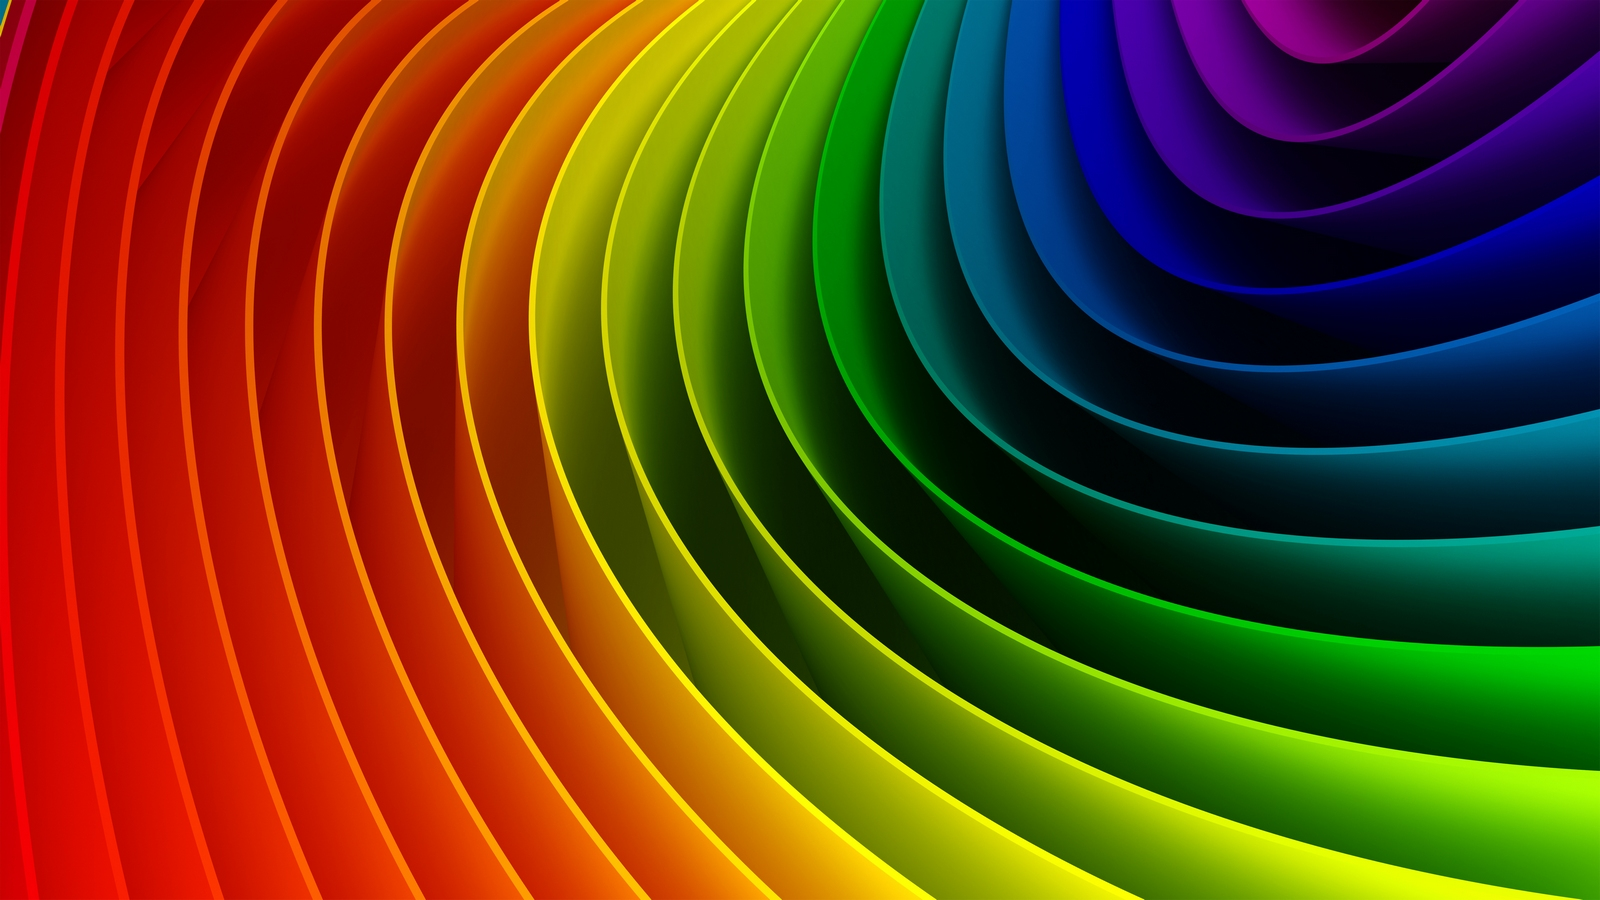 Colourful Stripes Colors Wallpaper 29701480 Fanpop Pictures In Color